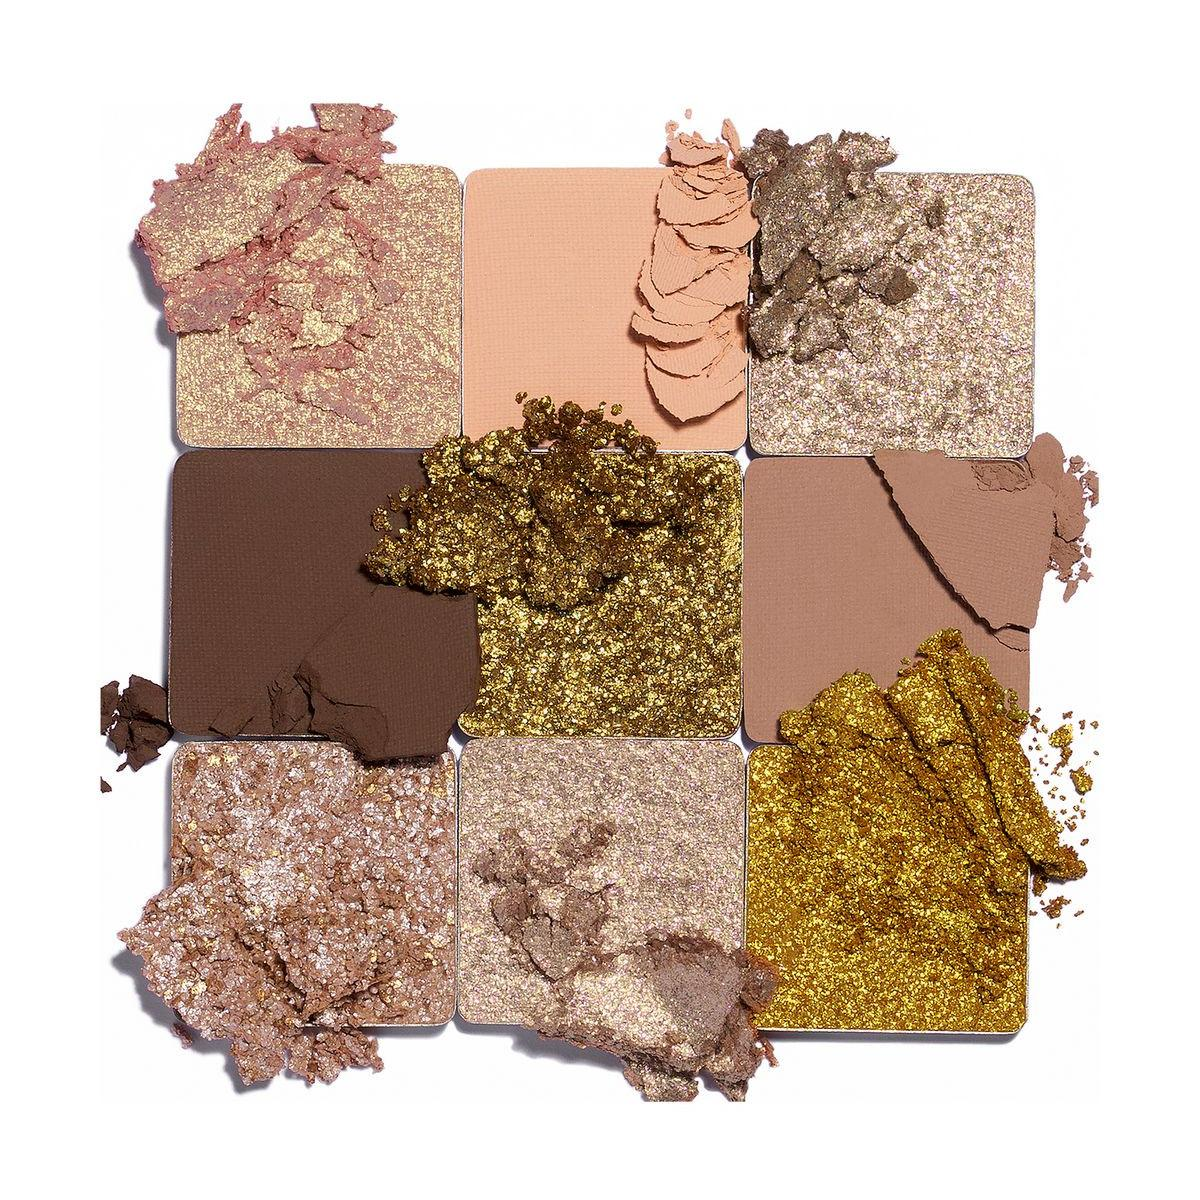 Huda Beauty Gold Obsessions Palette Crash Swatches